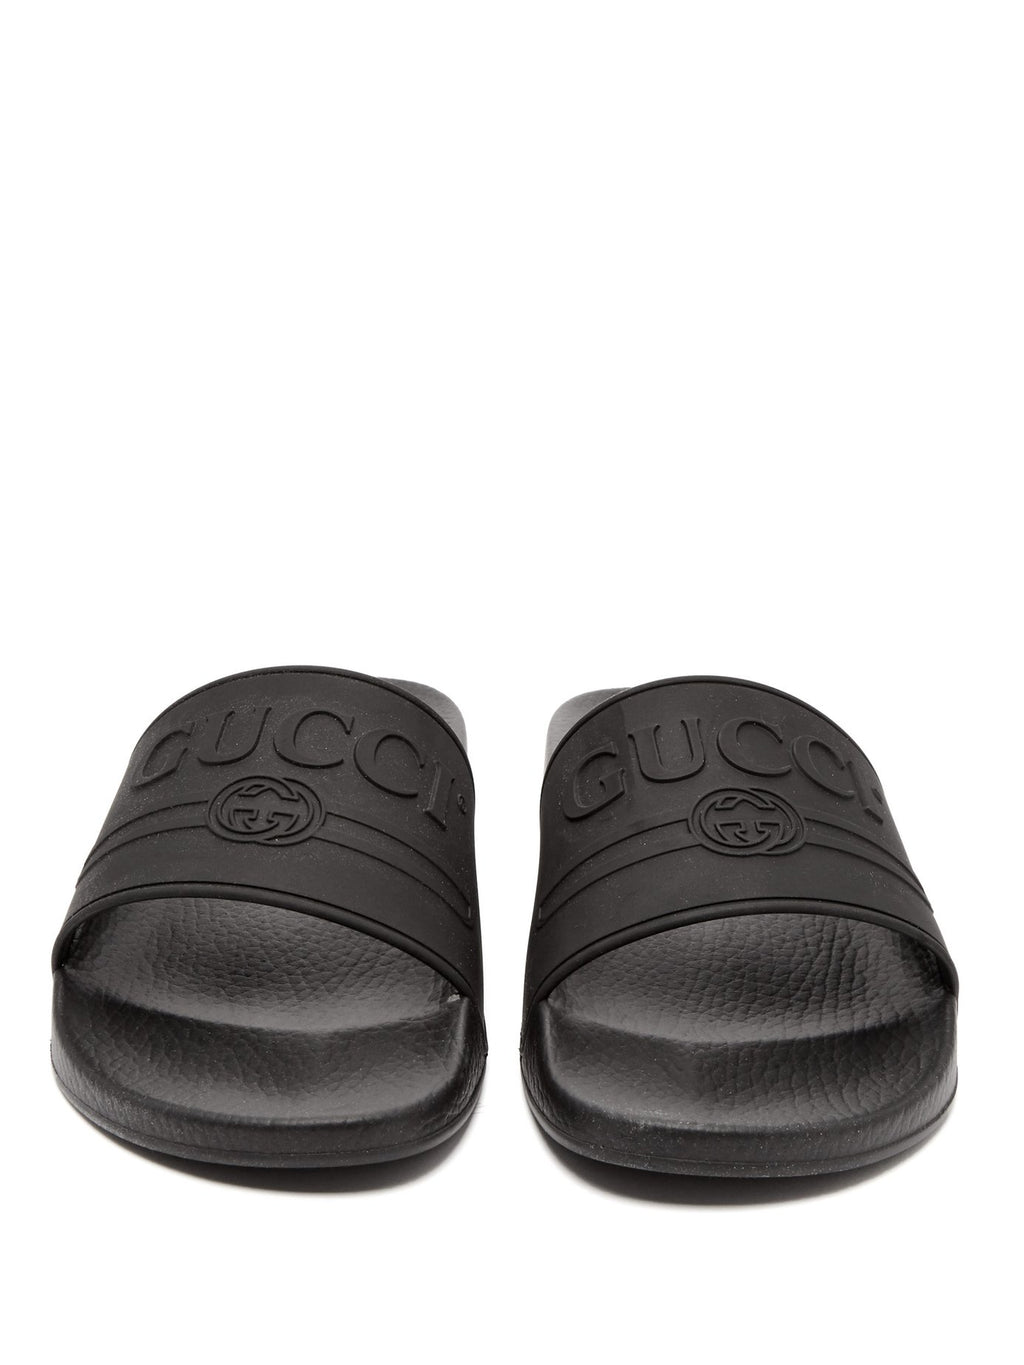 03b67aa3181 Gucci Rubber Logo Pool Slides Black SS18 – The Luxury Shopper